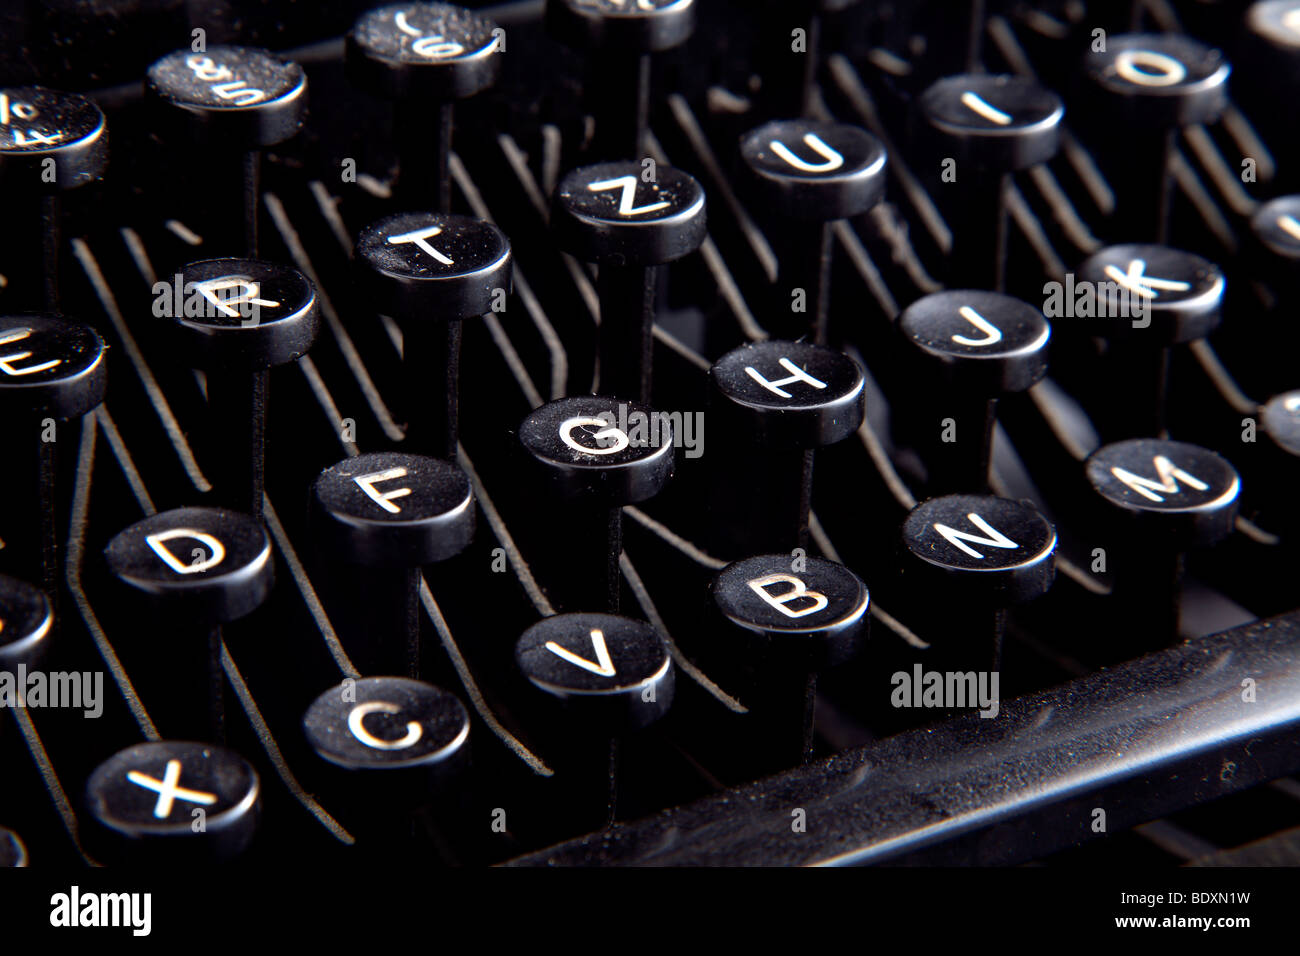 Keyboard of a dusty antique typewriter - Stock Image